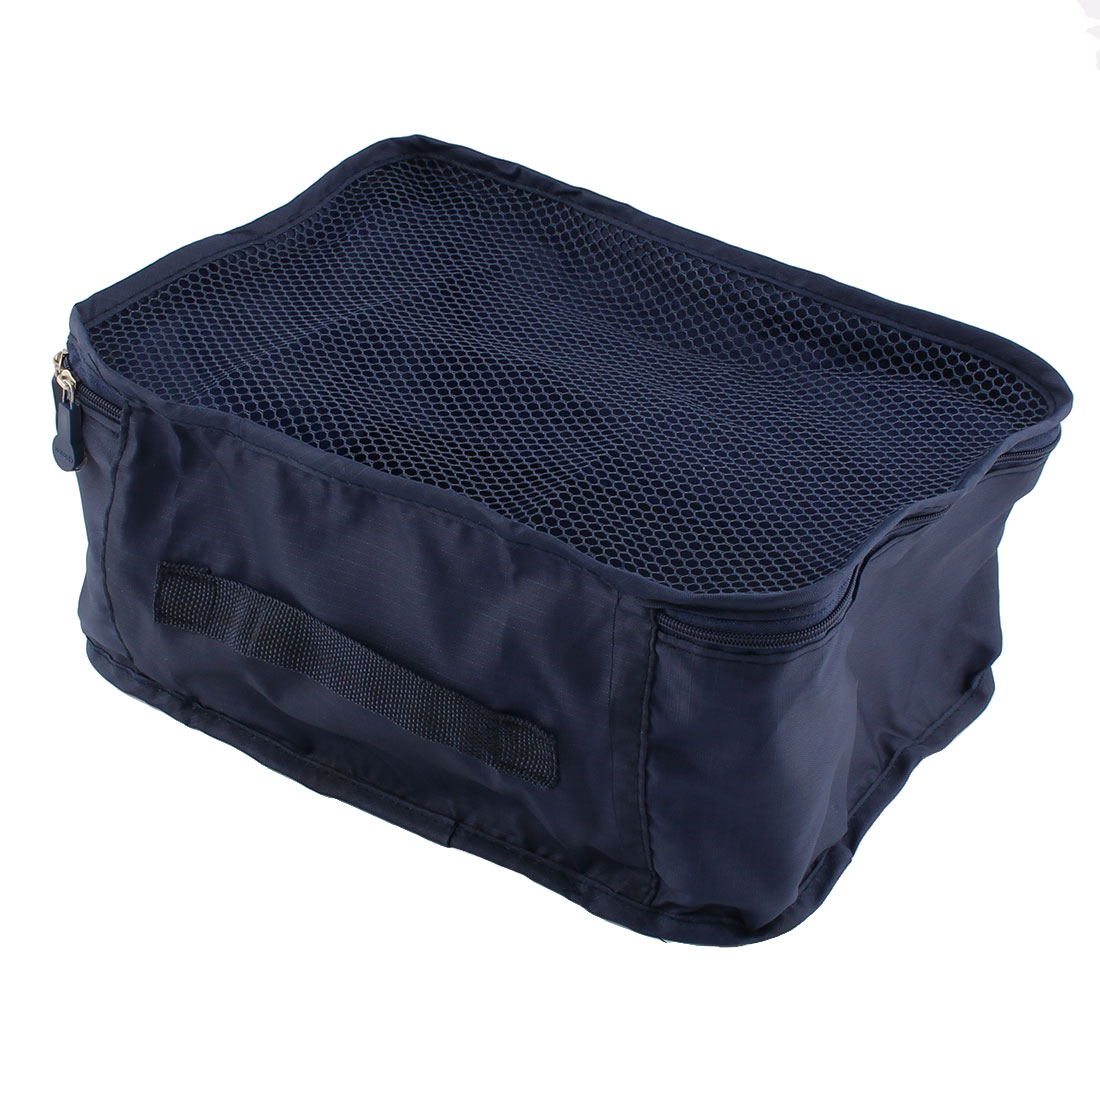 Travel Admission Foldable Zipper Closure Package Pouch Mesh Bag Indigo Navy